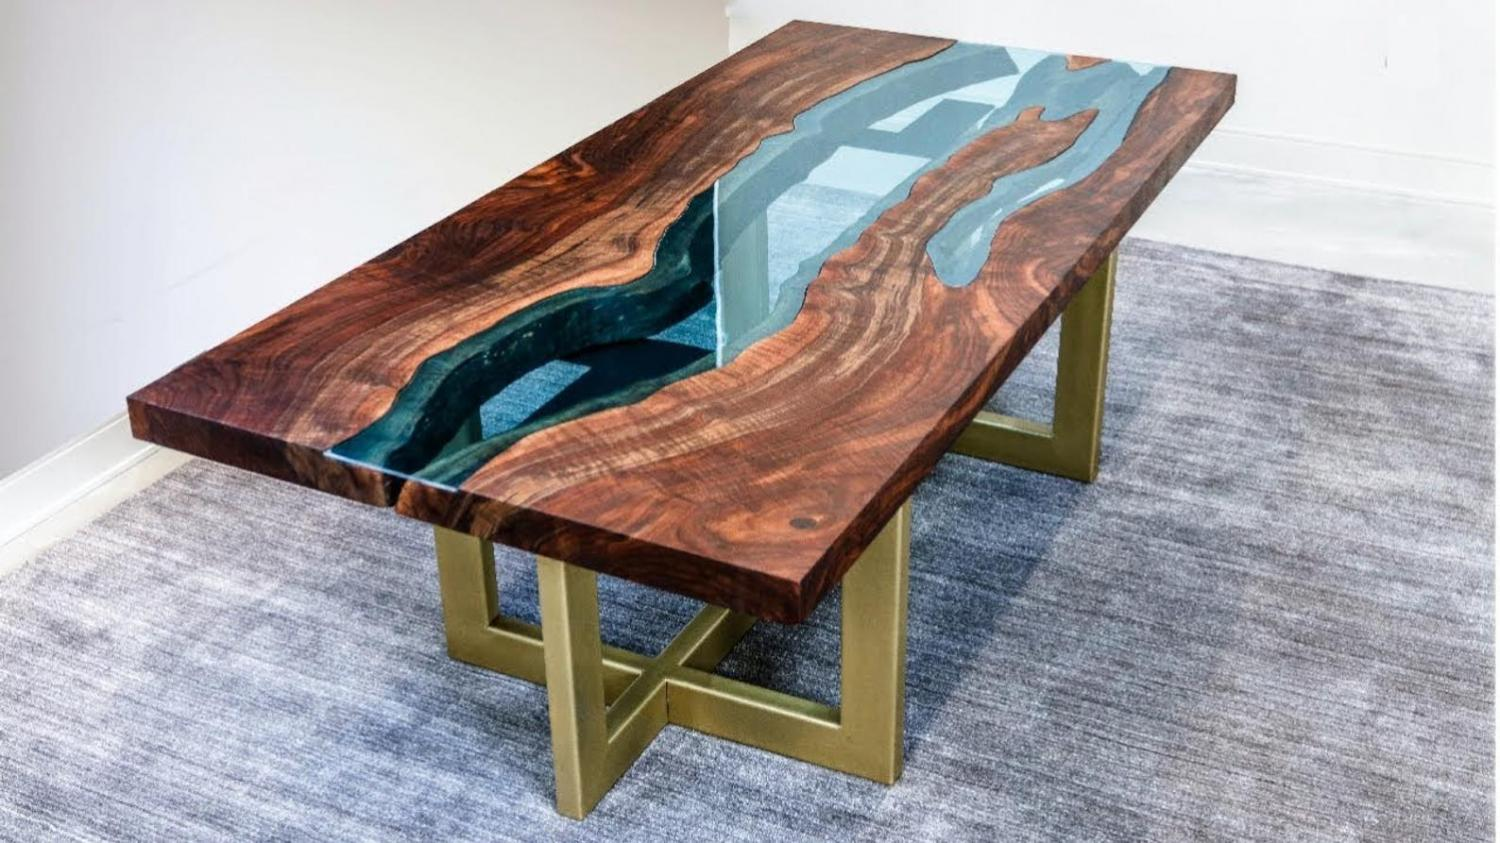 A beautiful epoxy table with a clear river running through it. Makes a perfect dinner table.